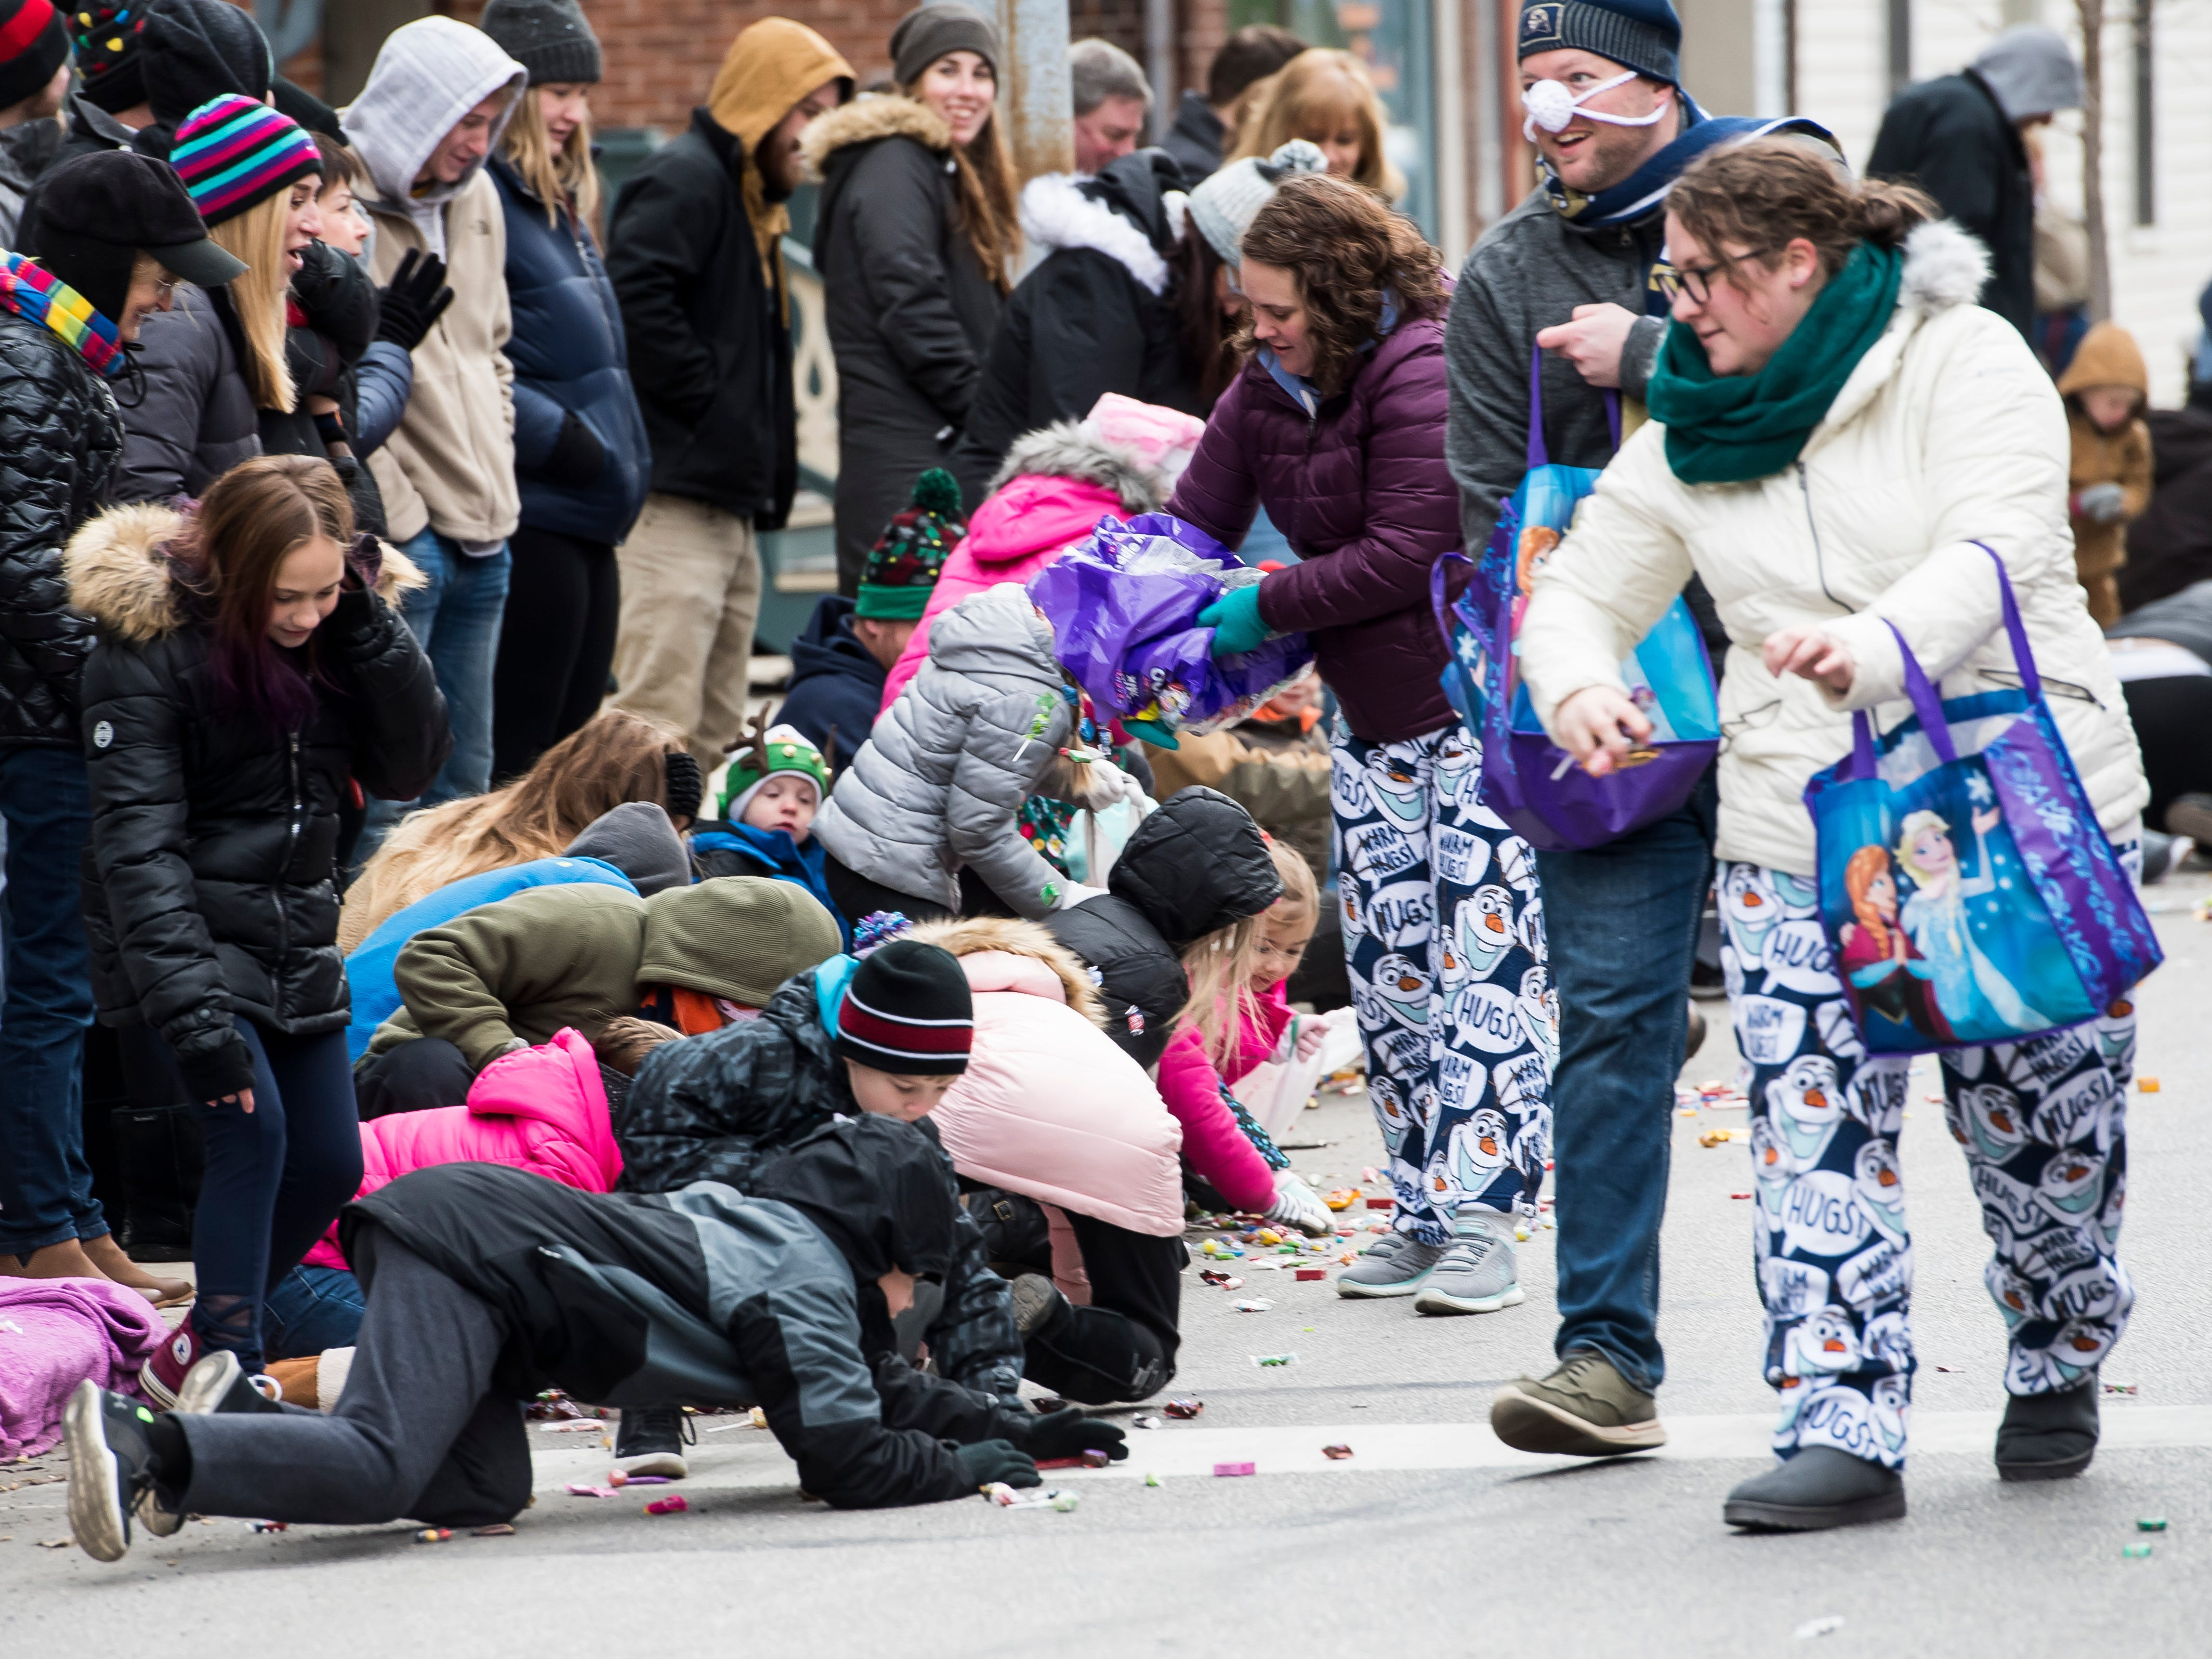 Children scramble to collect candy during the annual Hanover Christmas parade on Friday, November, 23, 2018.